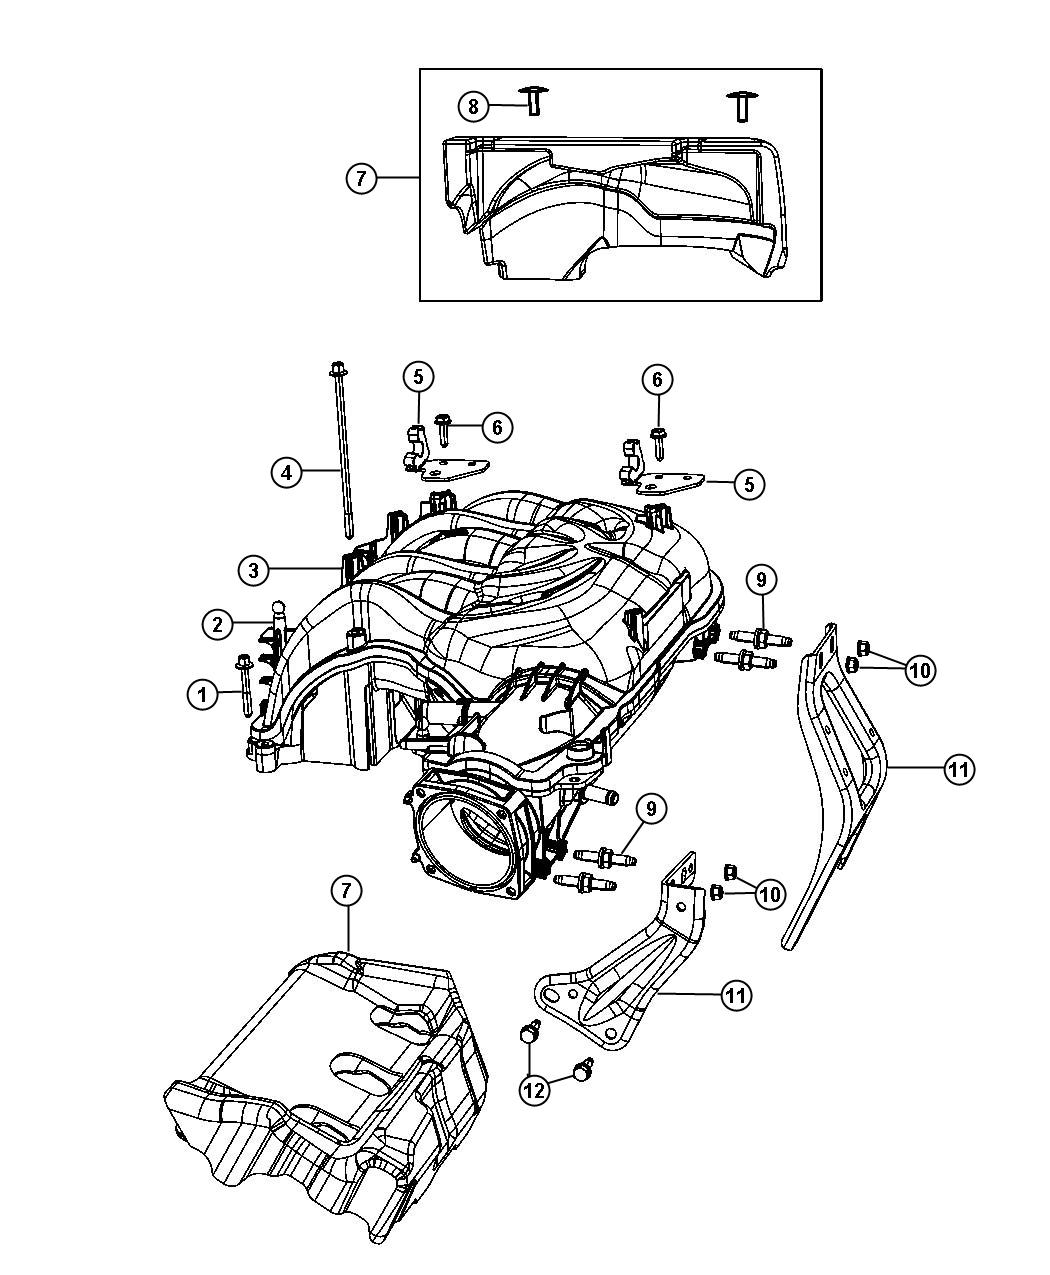 2012 jeep wrangler wiring diagram 96 civic ignition 3 6l engine